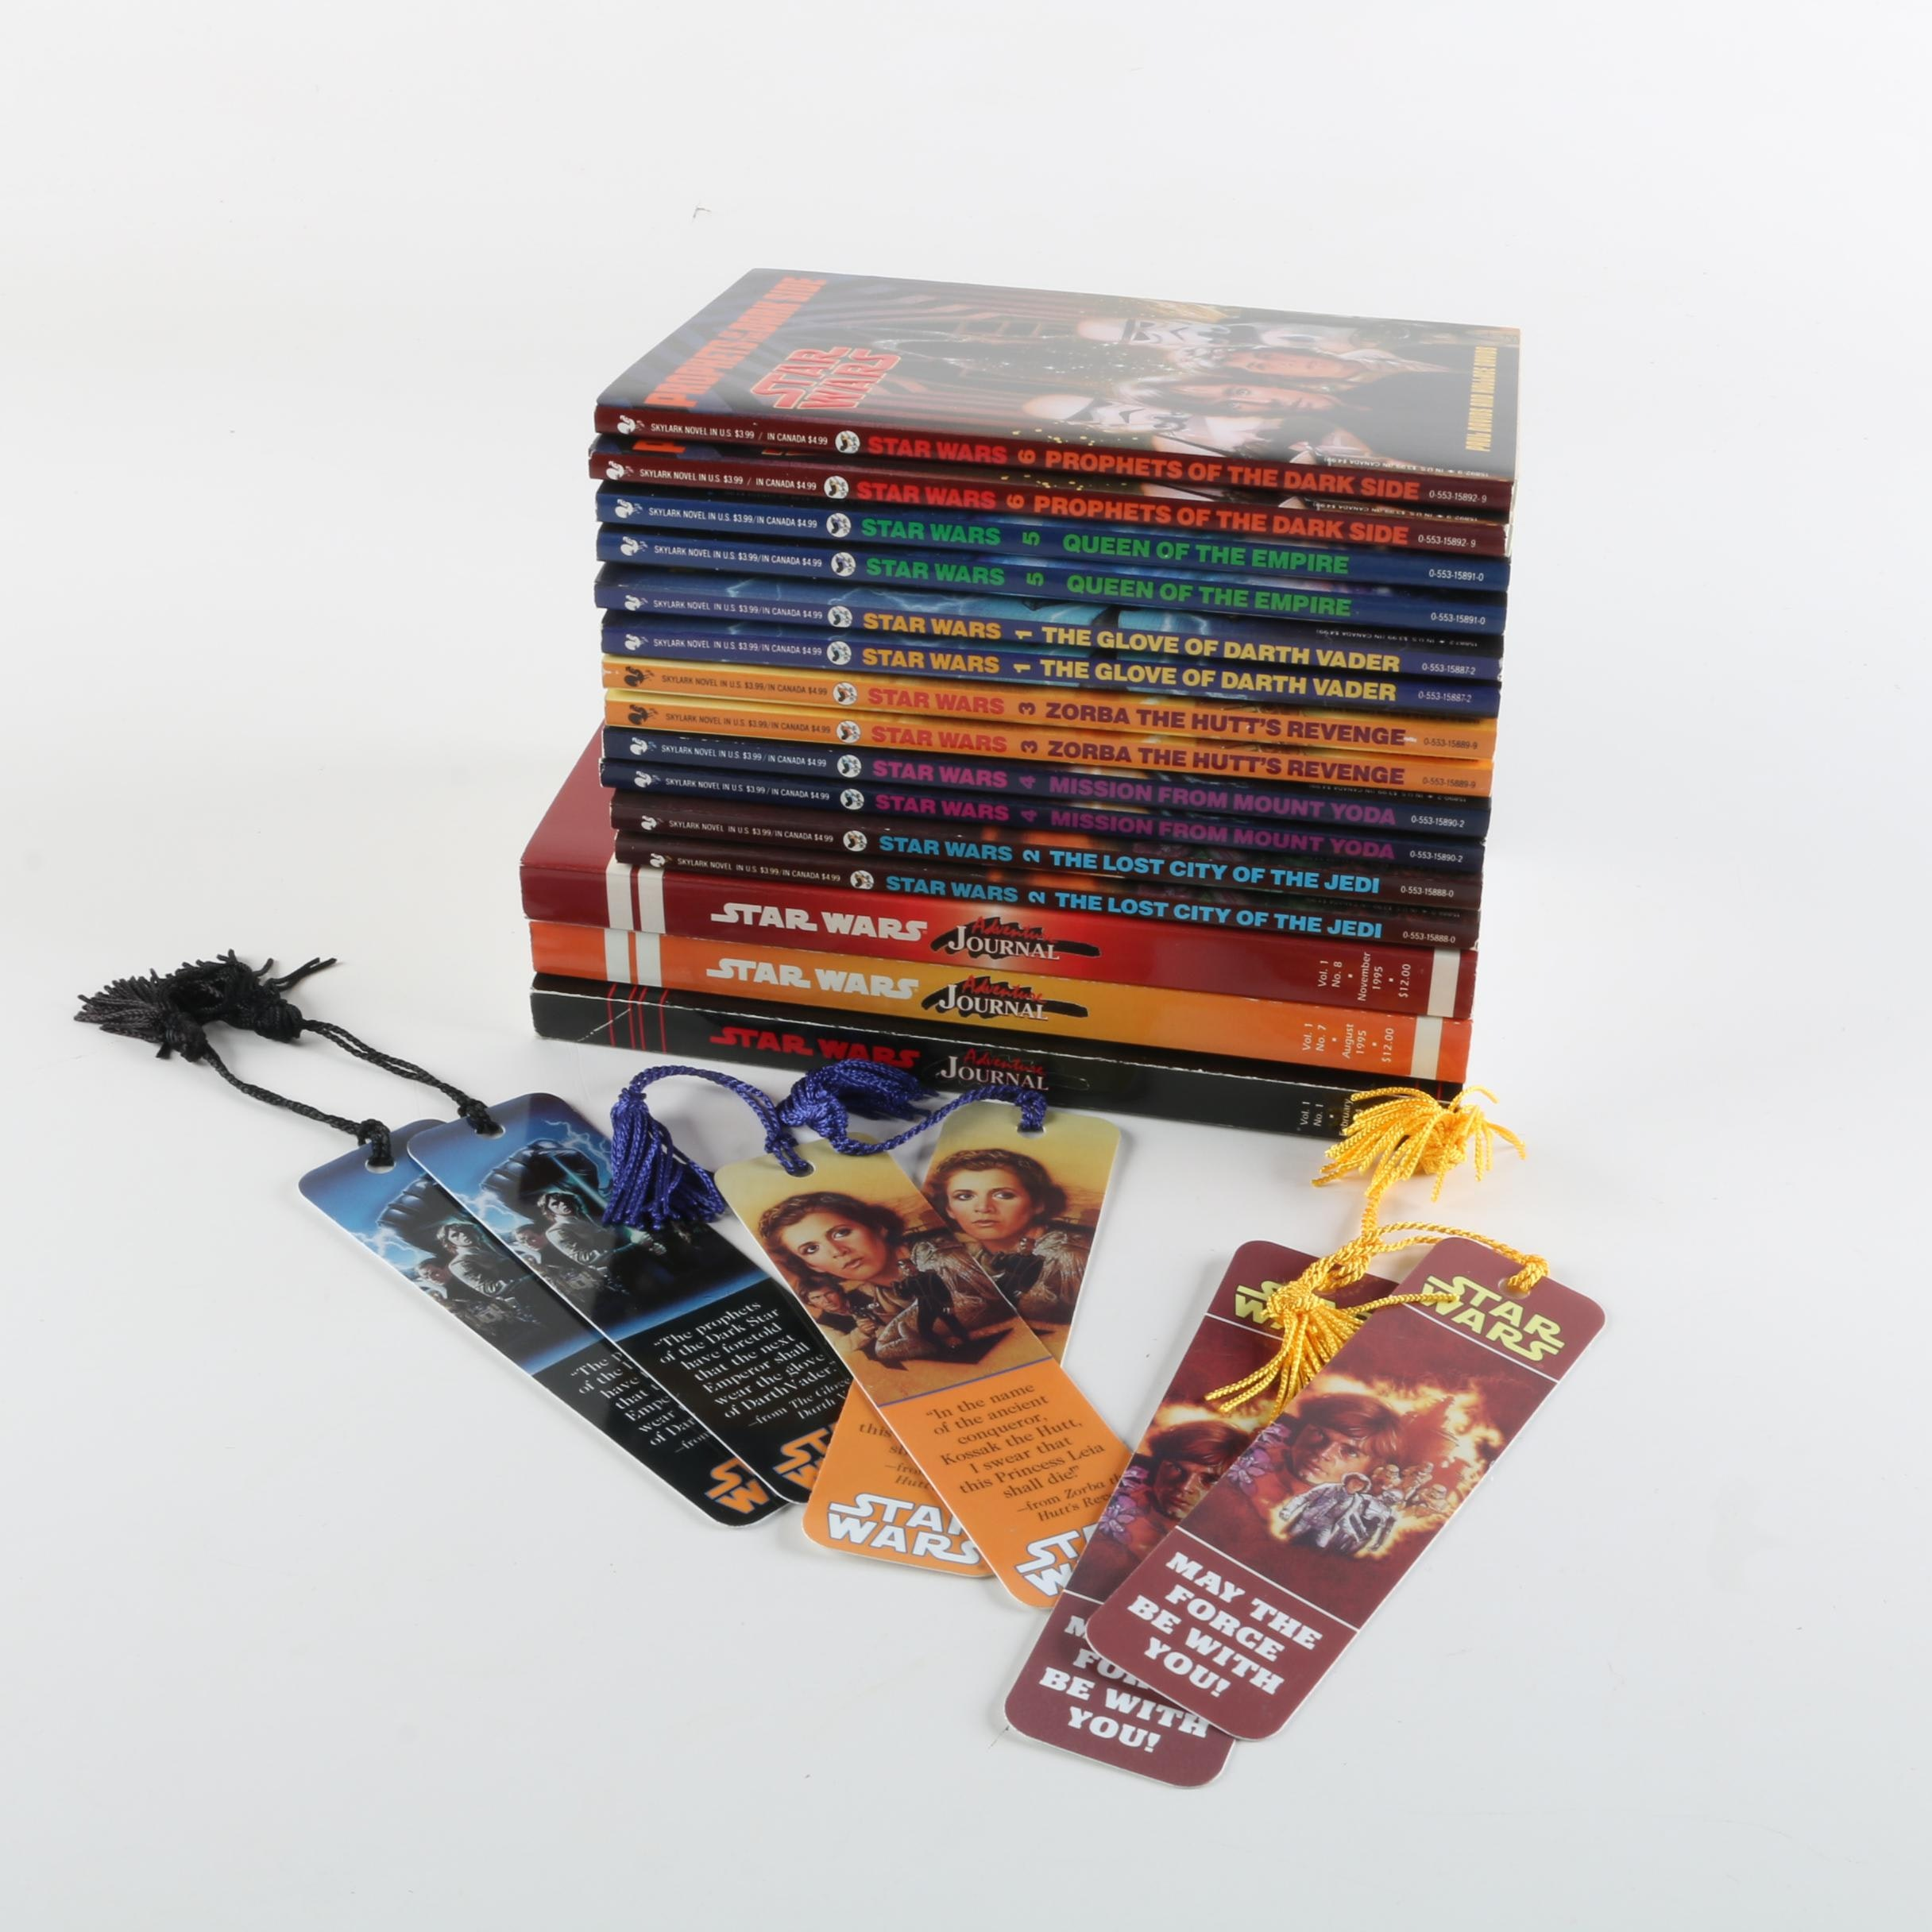 Star Wars Adventure Journals and Jedi Prince Series Books with Bookmarks